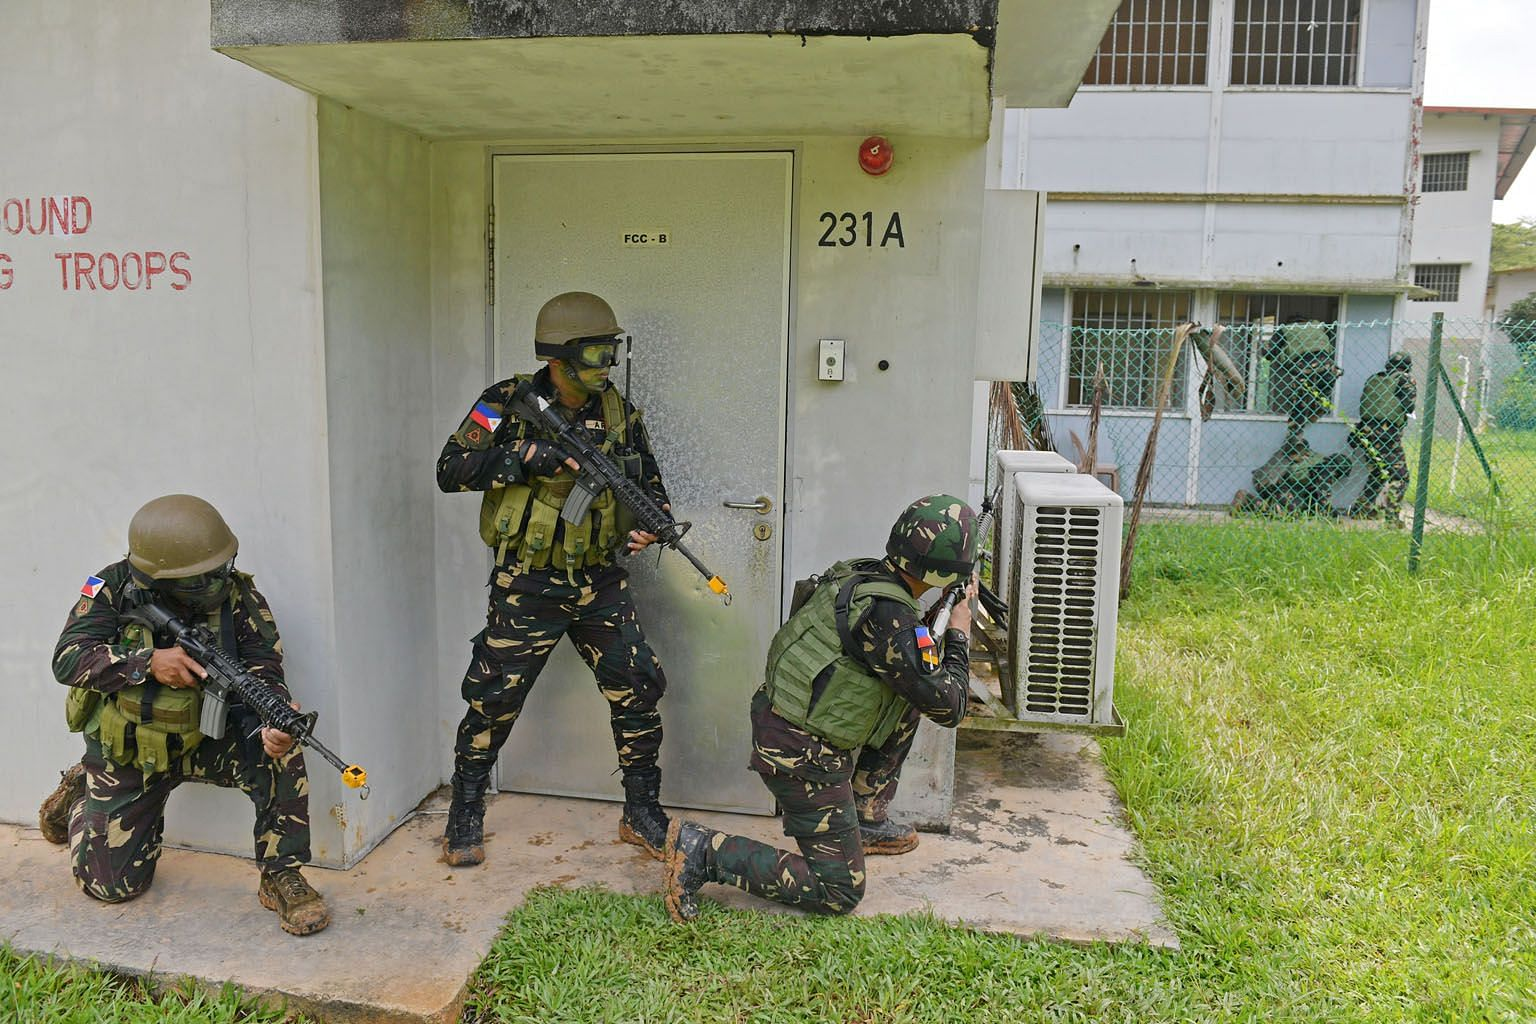 Philippine troops in a drill at the Murai Urban Training Facility in Lim Chu Kang as part of an exchange with the Singapore Armed Forces last December. Unless the guardians of security in the region move from counter-terrorism cooperation to collabor